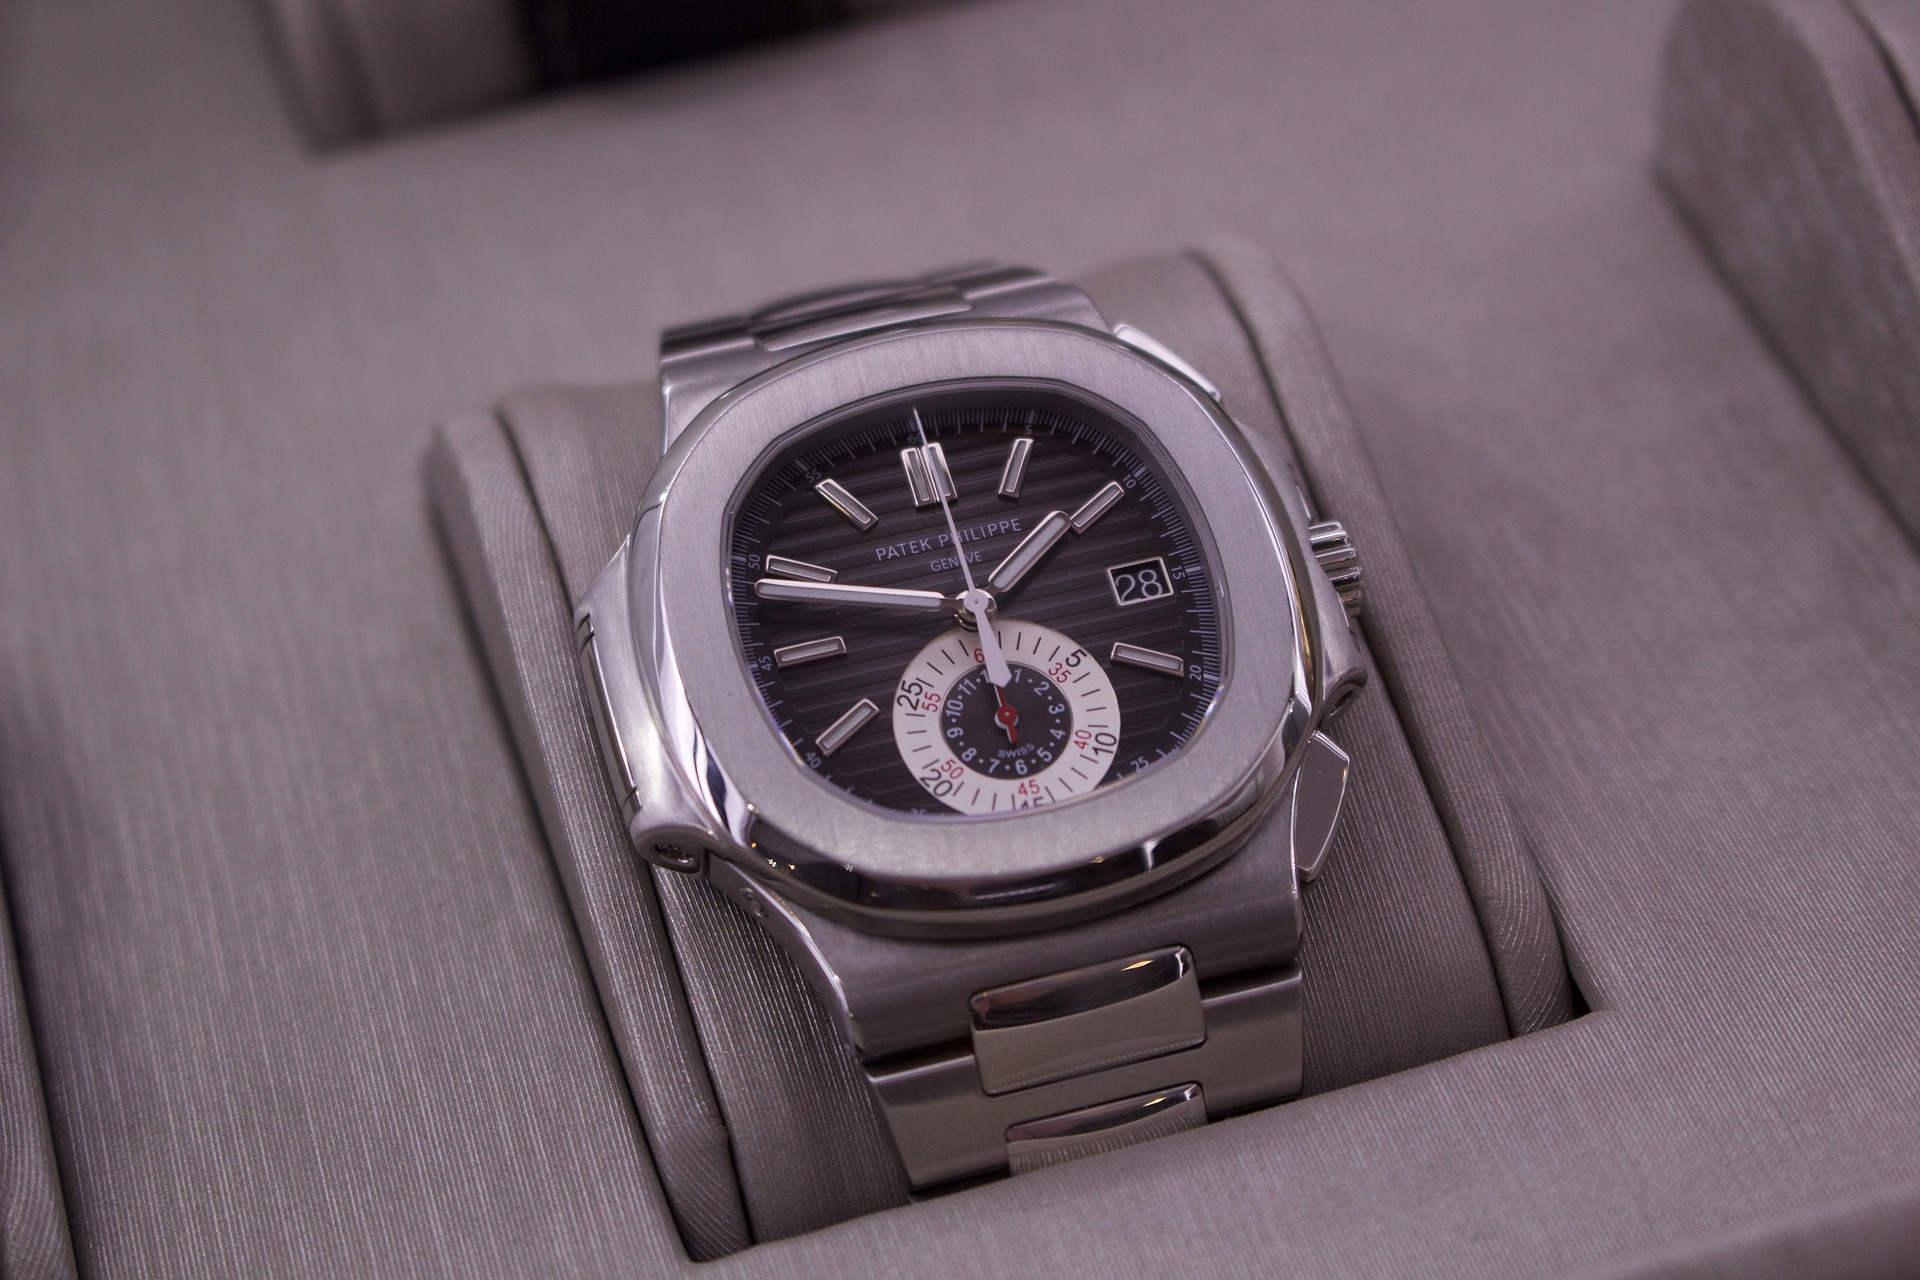 What to Think About When Buying Watches Online